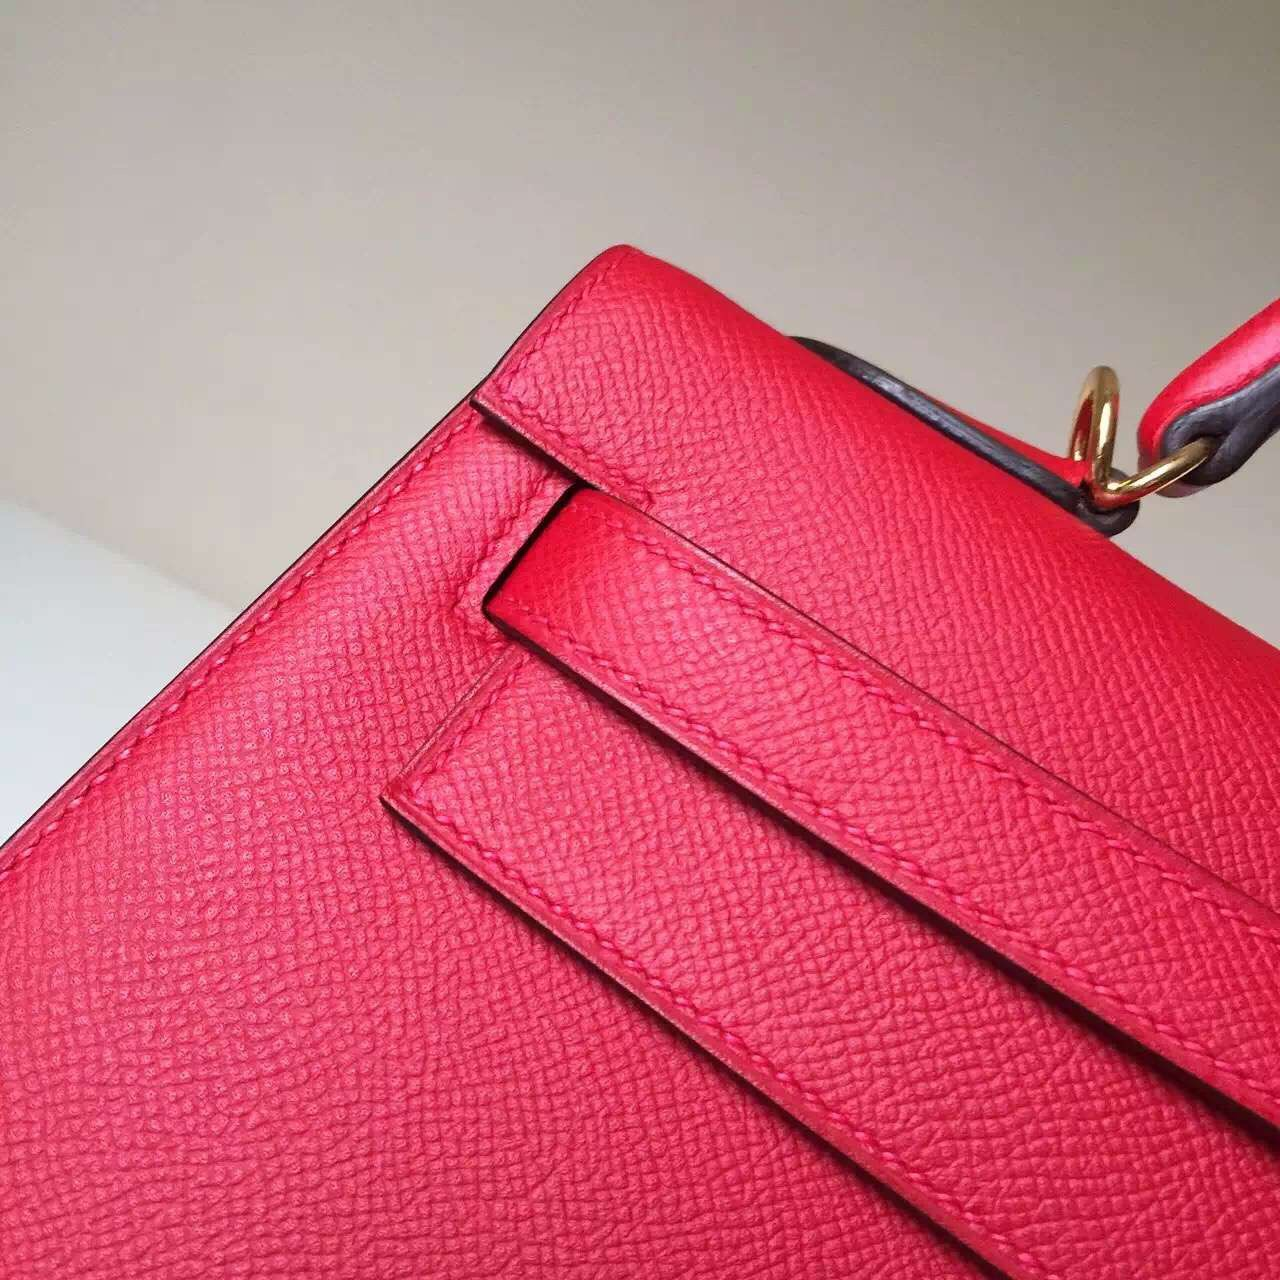 Discount Hermes Q5 Rouge Casaque Epsom Leather Sellier Kelly Bag 32cm